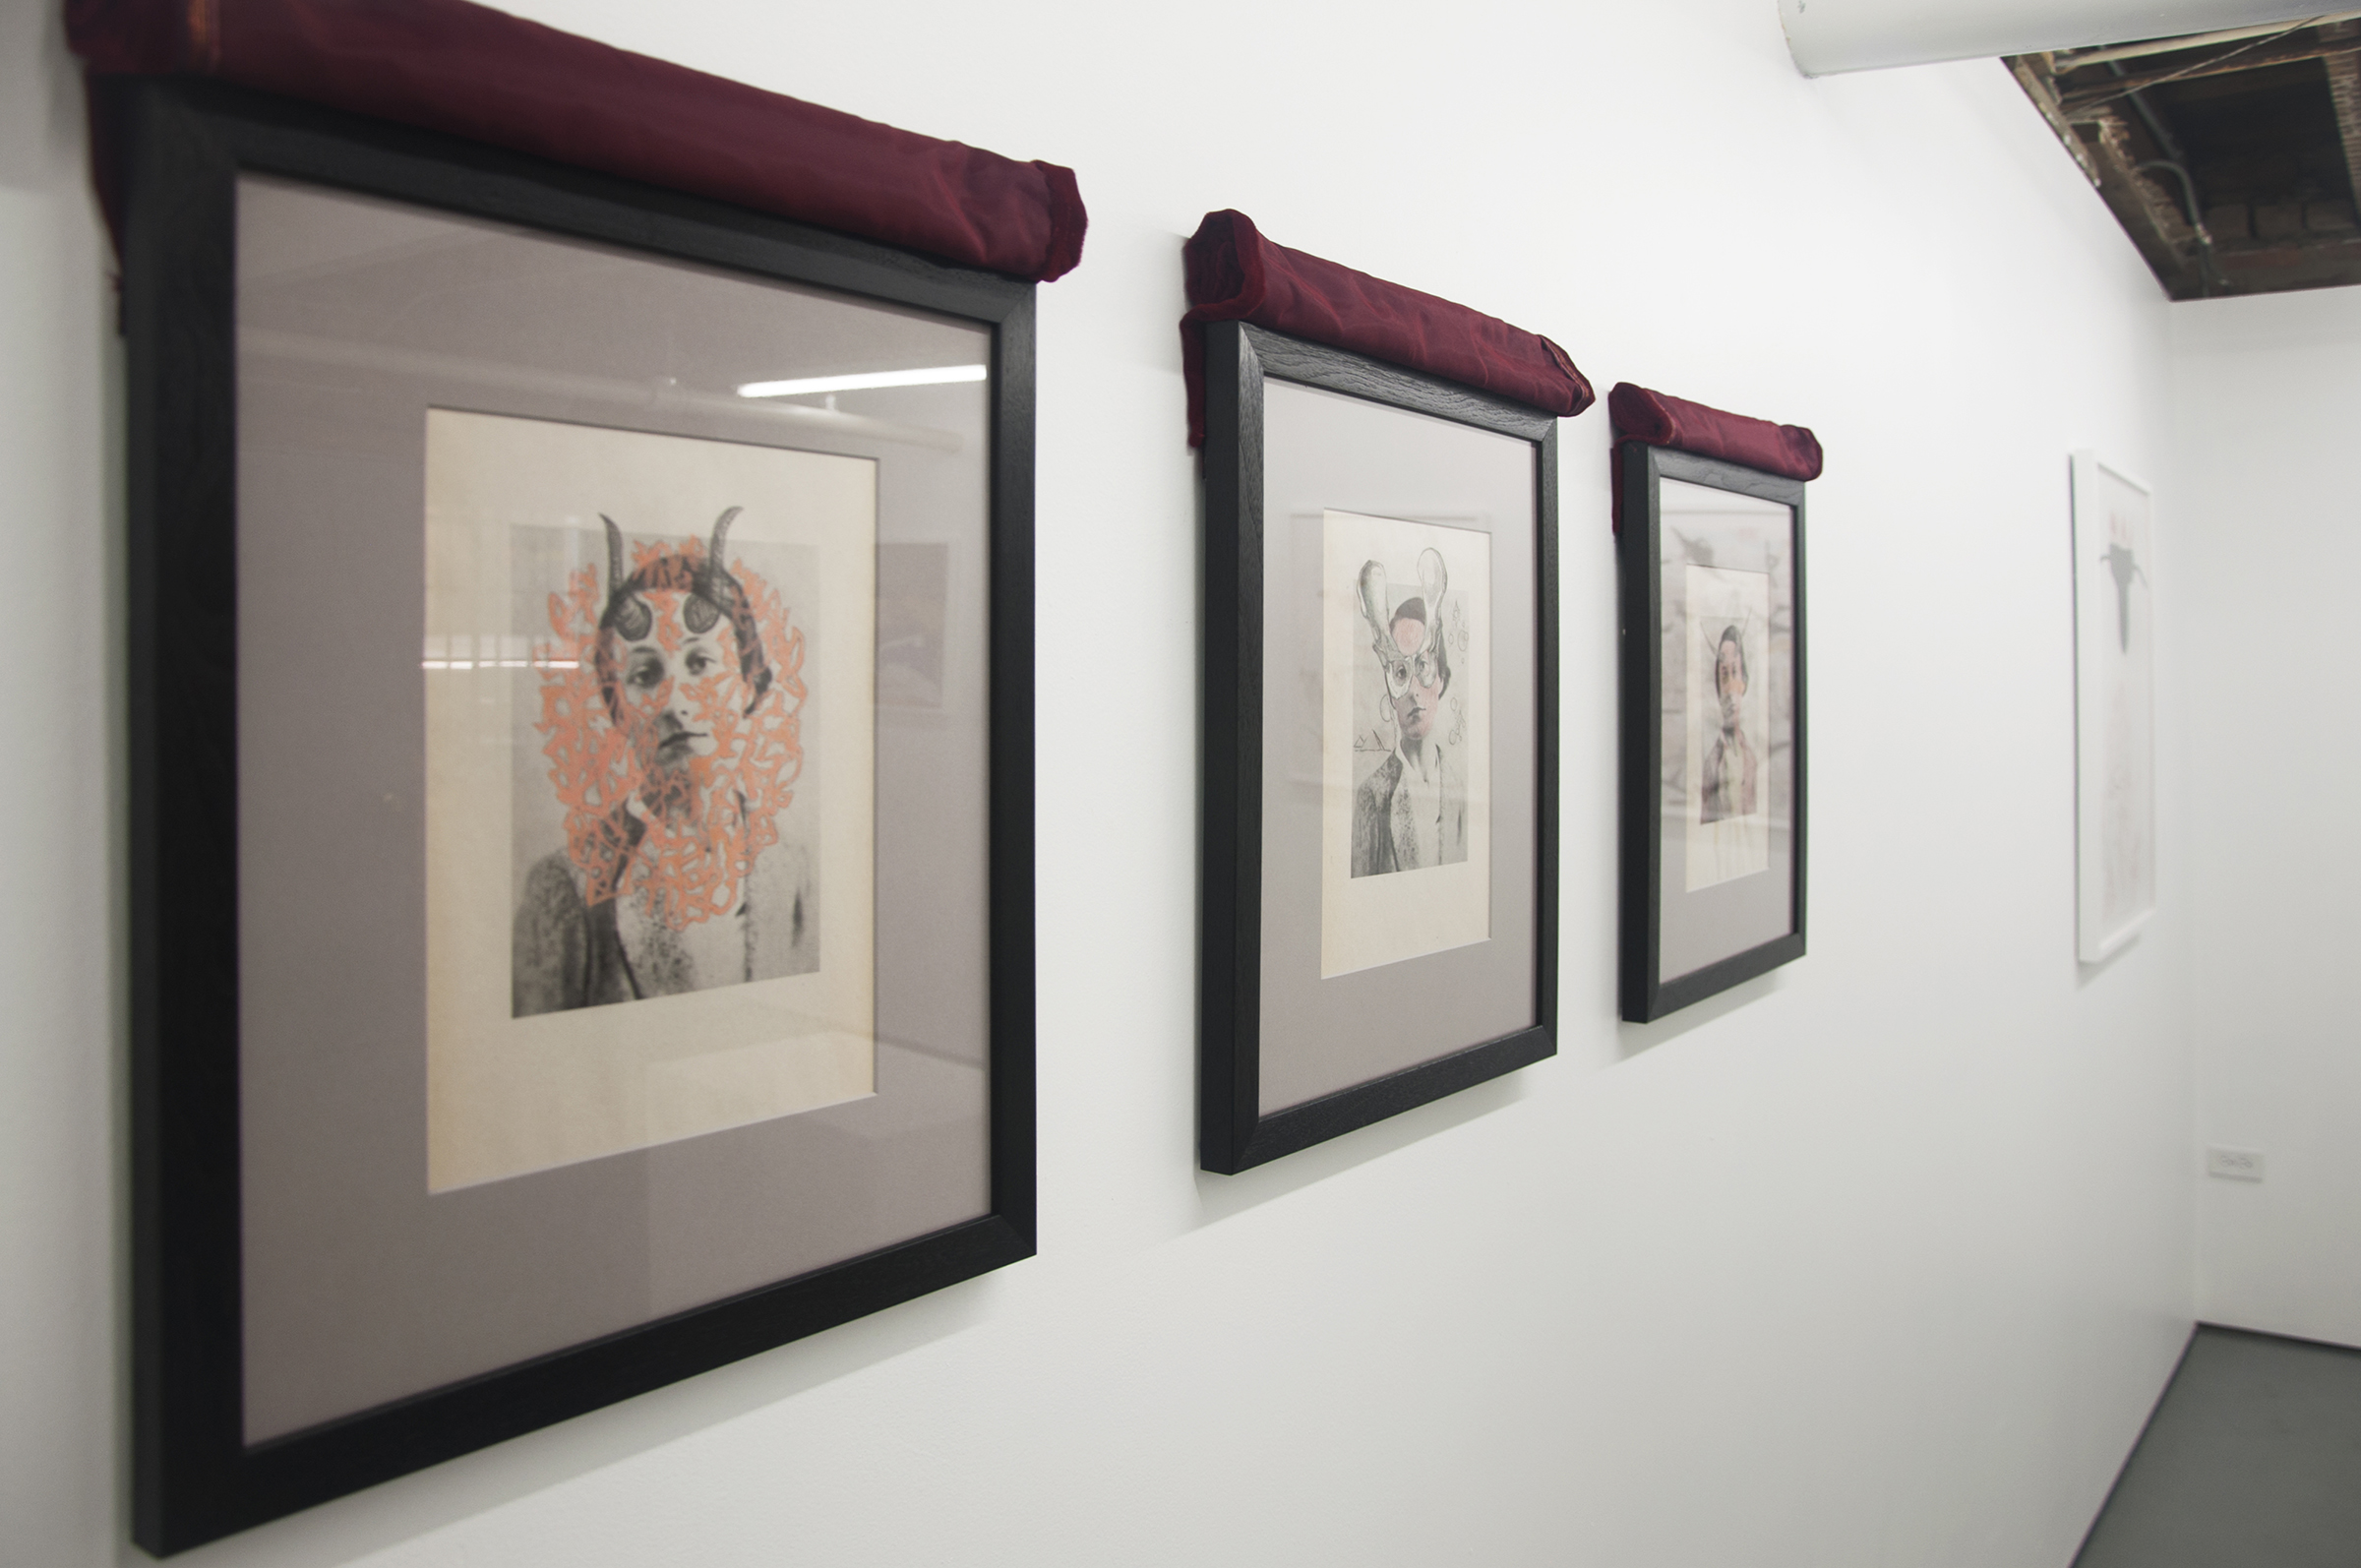 "Frontward Tilt (from left to right), Jeremy Biles, ""Ariadne's Thread"", 2015, digital print with graphite and wax crayon on newsprint with velvet veil; Jeremy Biles, ""The Sensation of Time"", 2015, digital print with graphite, colored pencil, and collage on newsprint with velvet veil; Jeremy Biles, 2015, ""Mirror of Tauromachy"", digital print with graphite, colored pencil, and semen on newsprint with velvet veil."